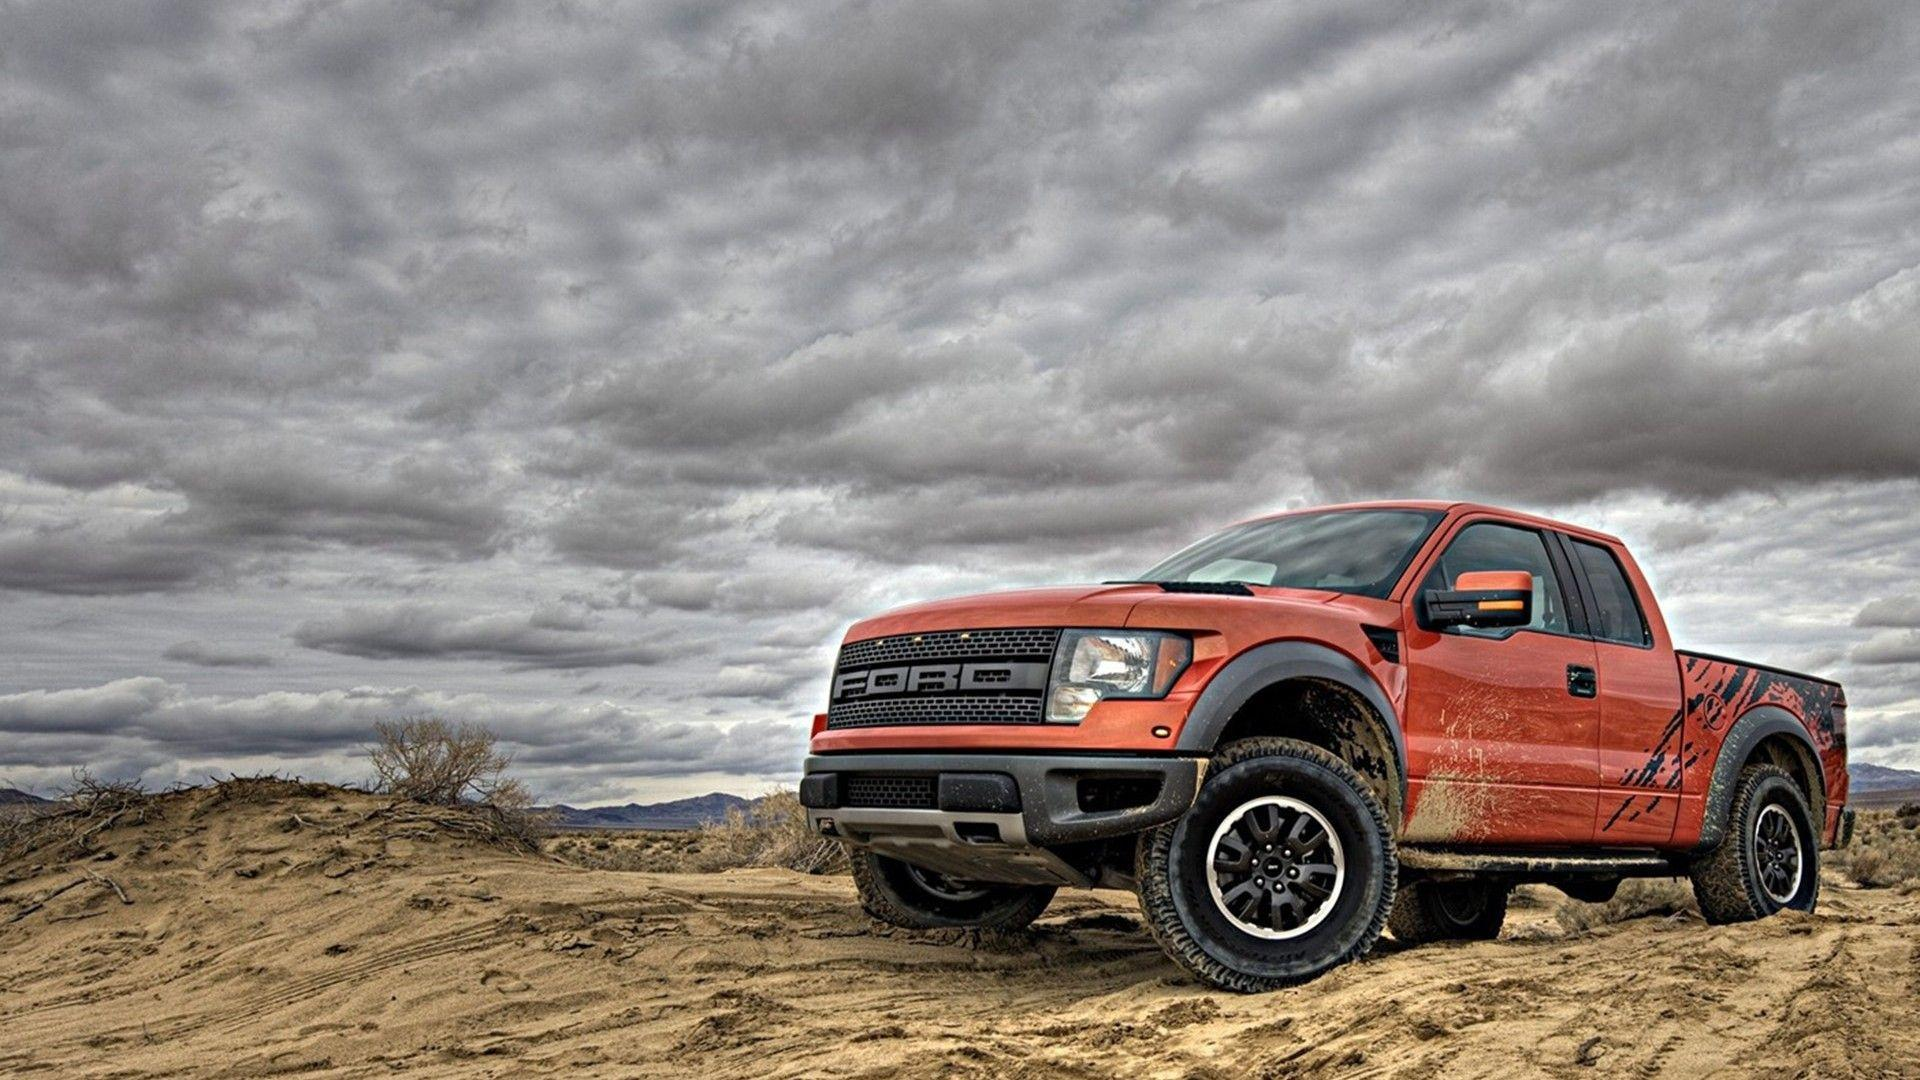 Ford Raptor wallpaper | 1920x1080 | #60620 | Epic Car Wallpapers ...